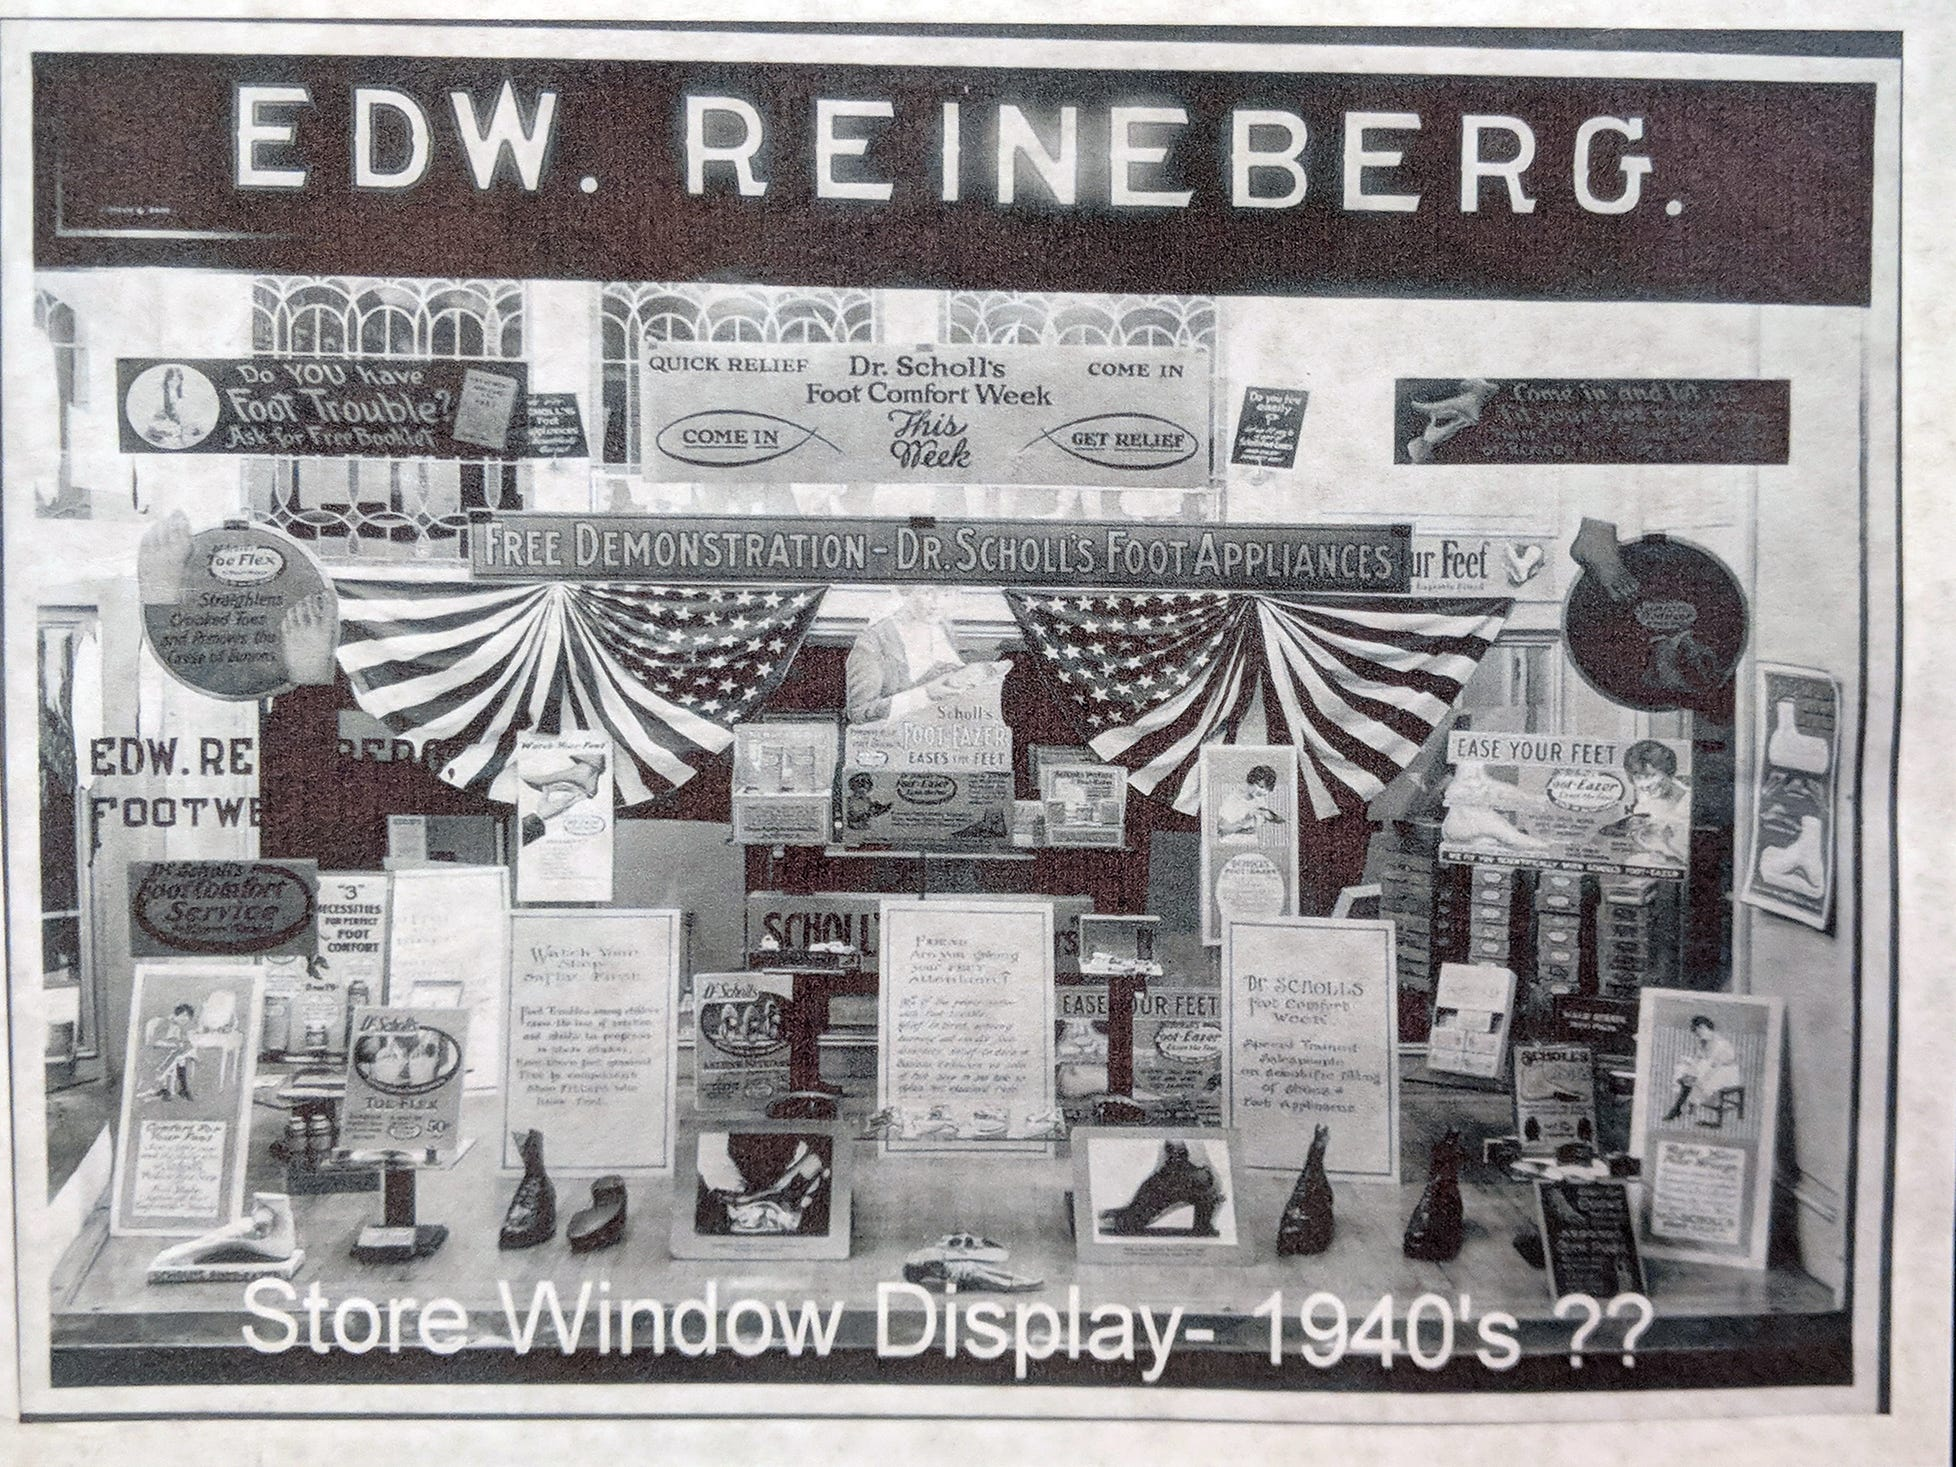 A window display in the Reineberg's Shoe store possibly from the 1940's.